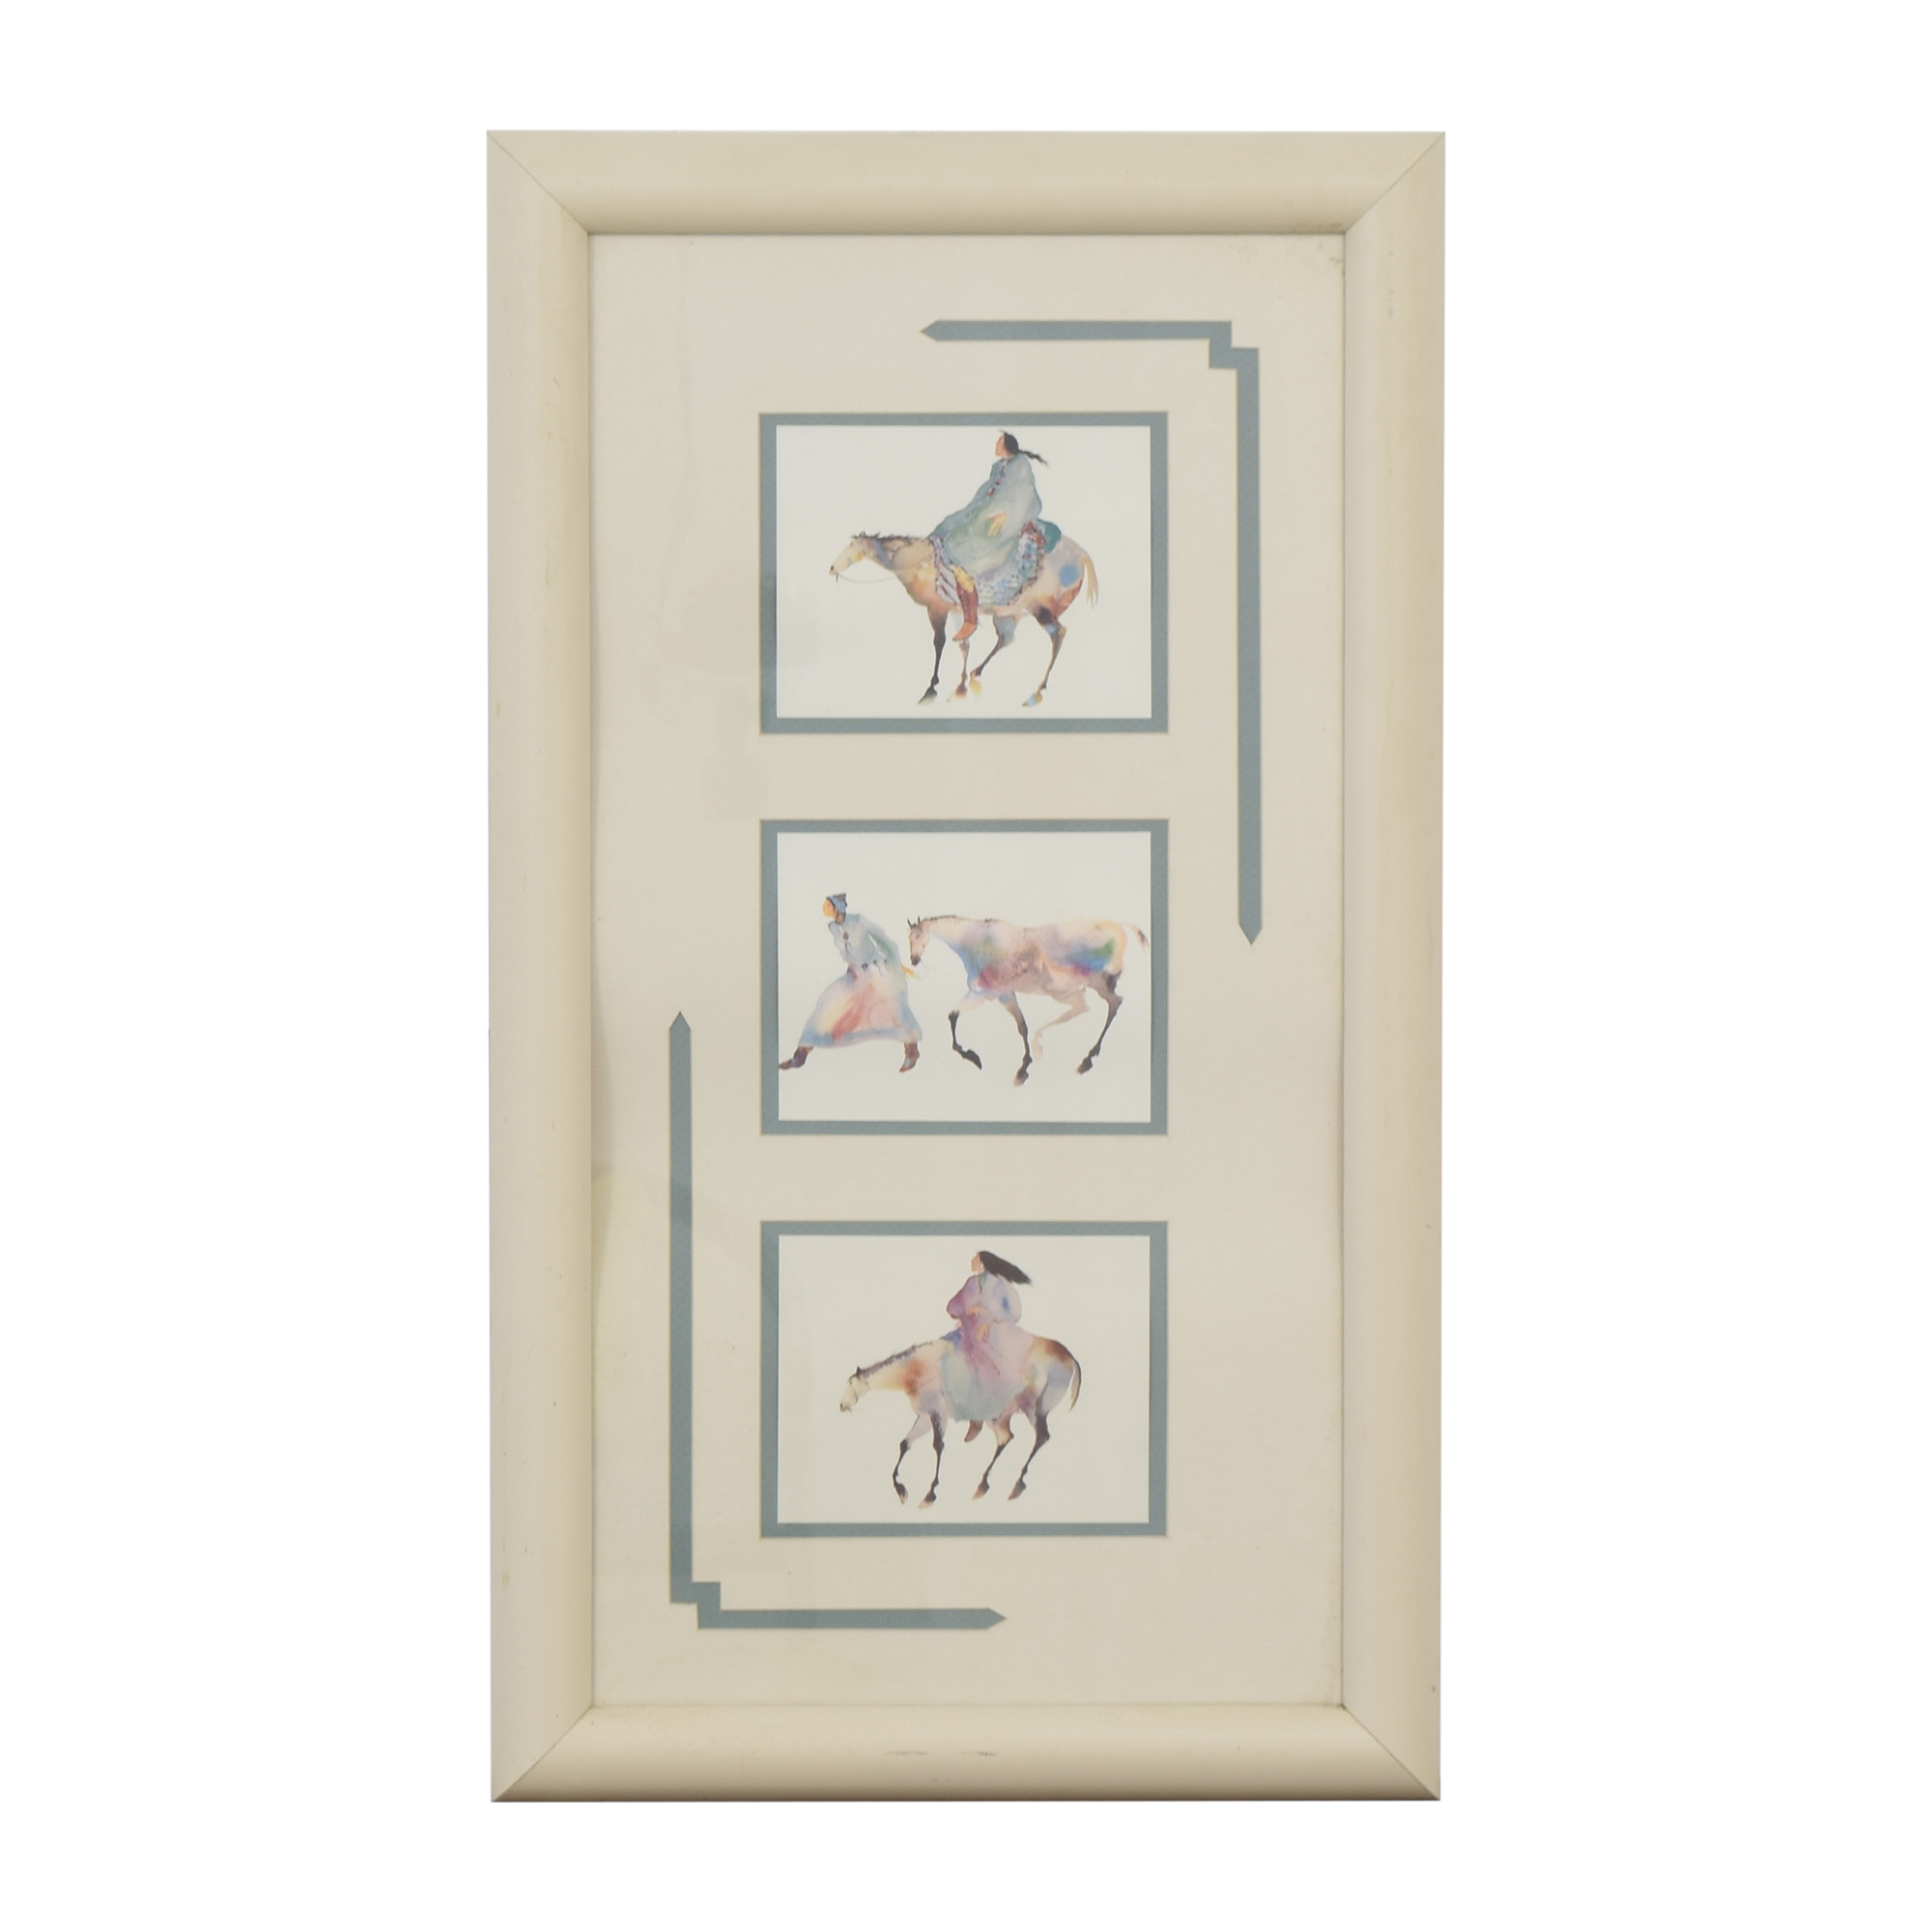 shop  Framed Equestrian Wall Art online